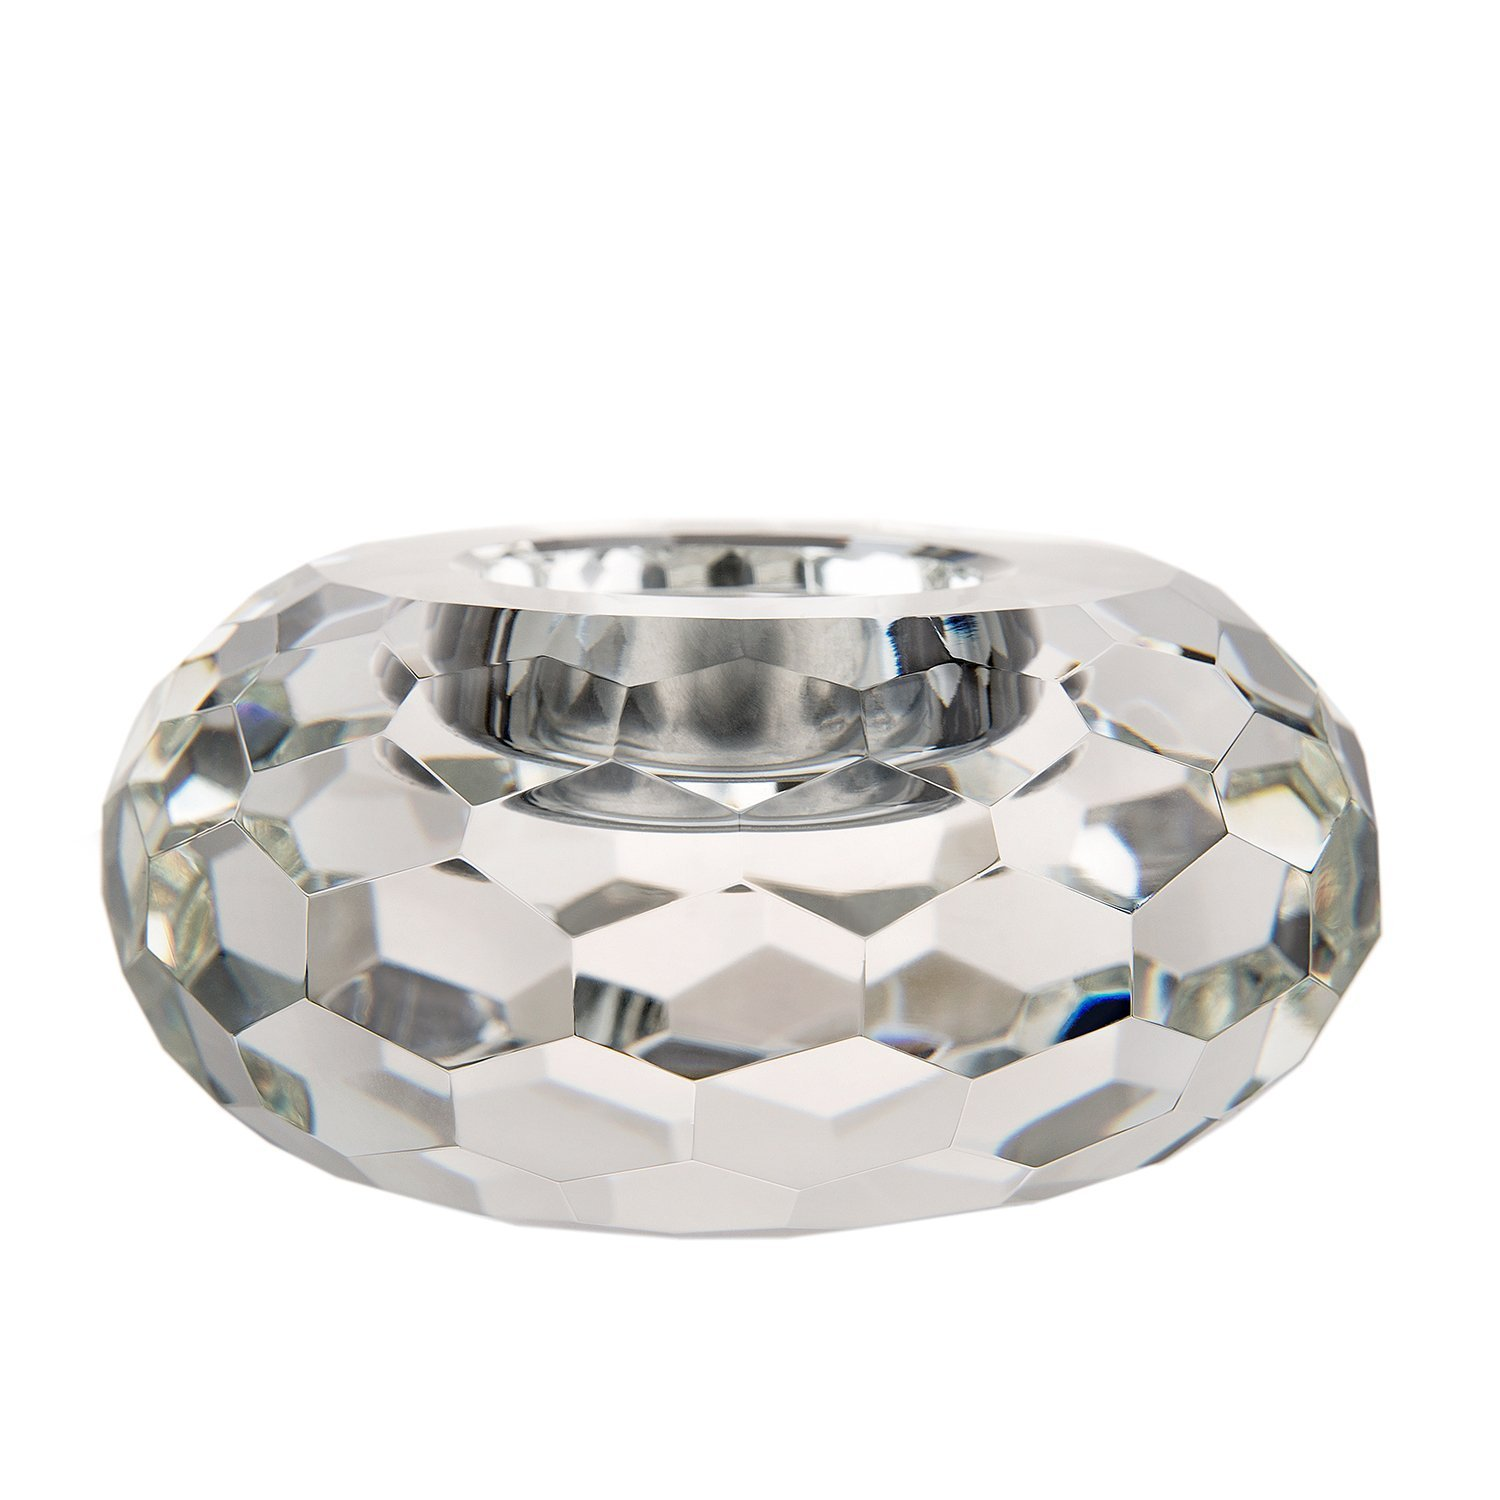 DONOUCLS Pack of 2 Hand Cut Crystal TeaLight Candle Holders Clear with Gift Box Small 4x8cm Xinyan Crystal